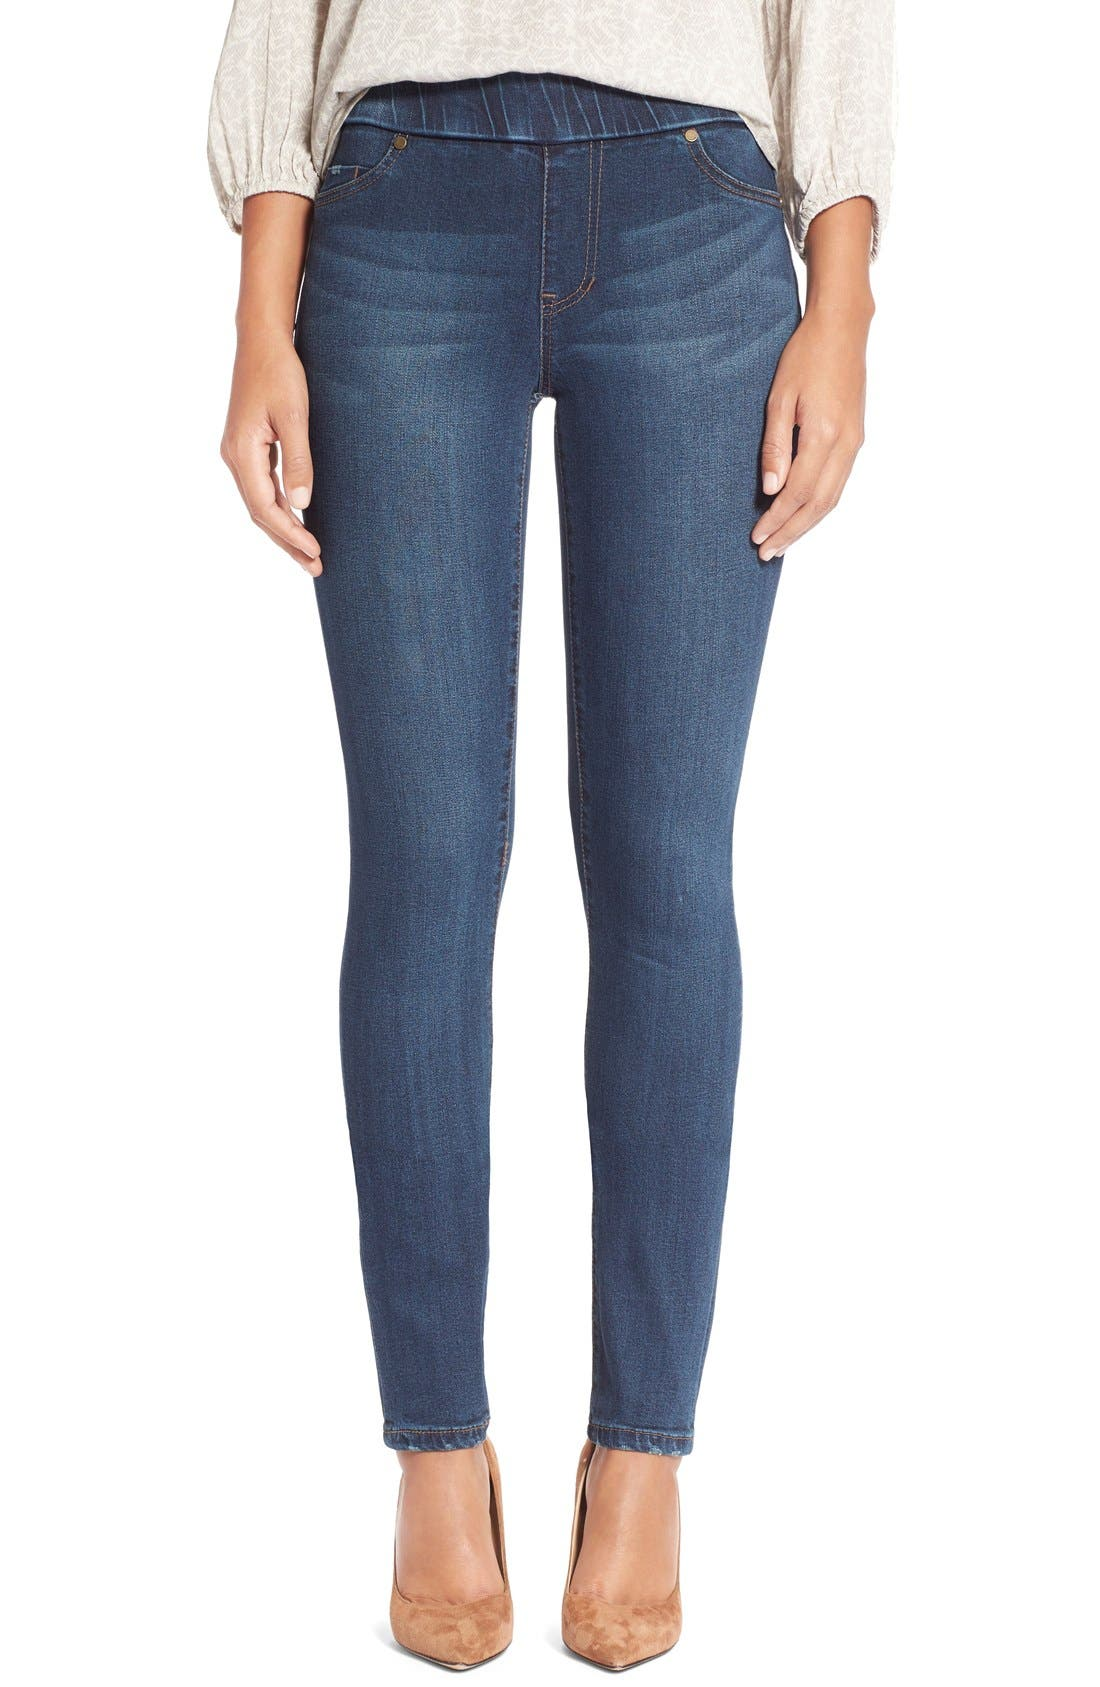 LIVERPOOL JEANS COMPANY 'Sienna' Pull-On Knit Denim Leggings